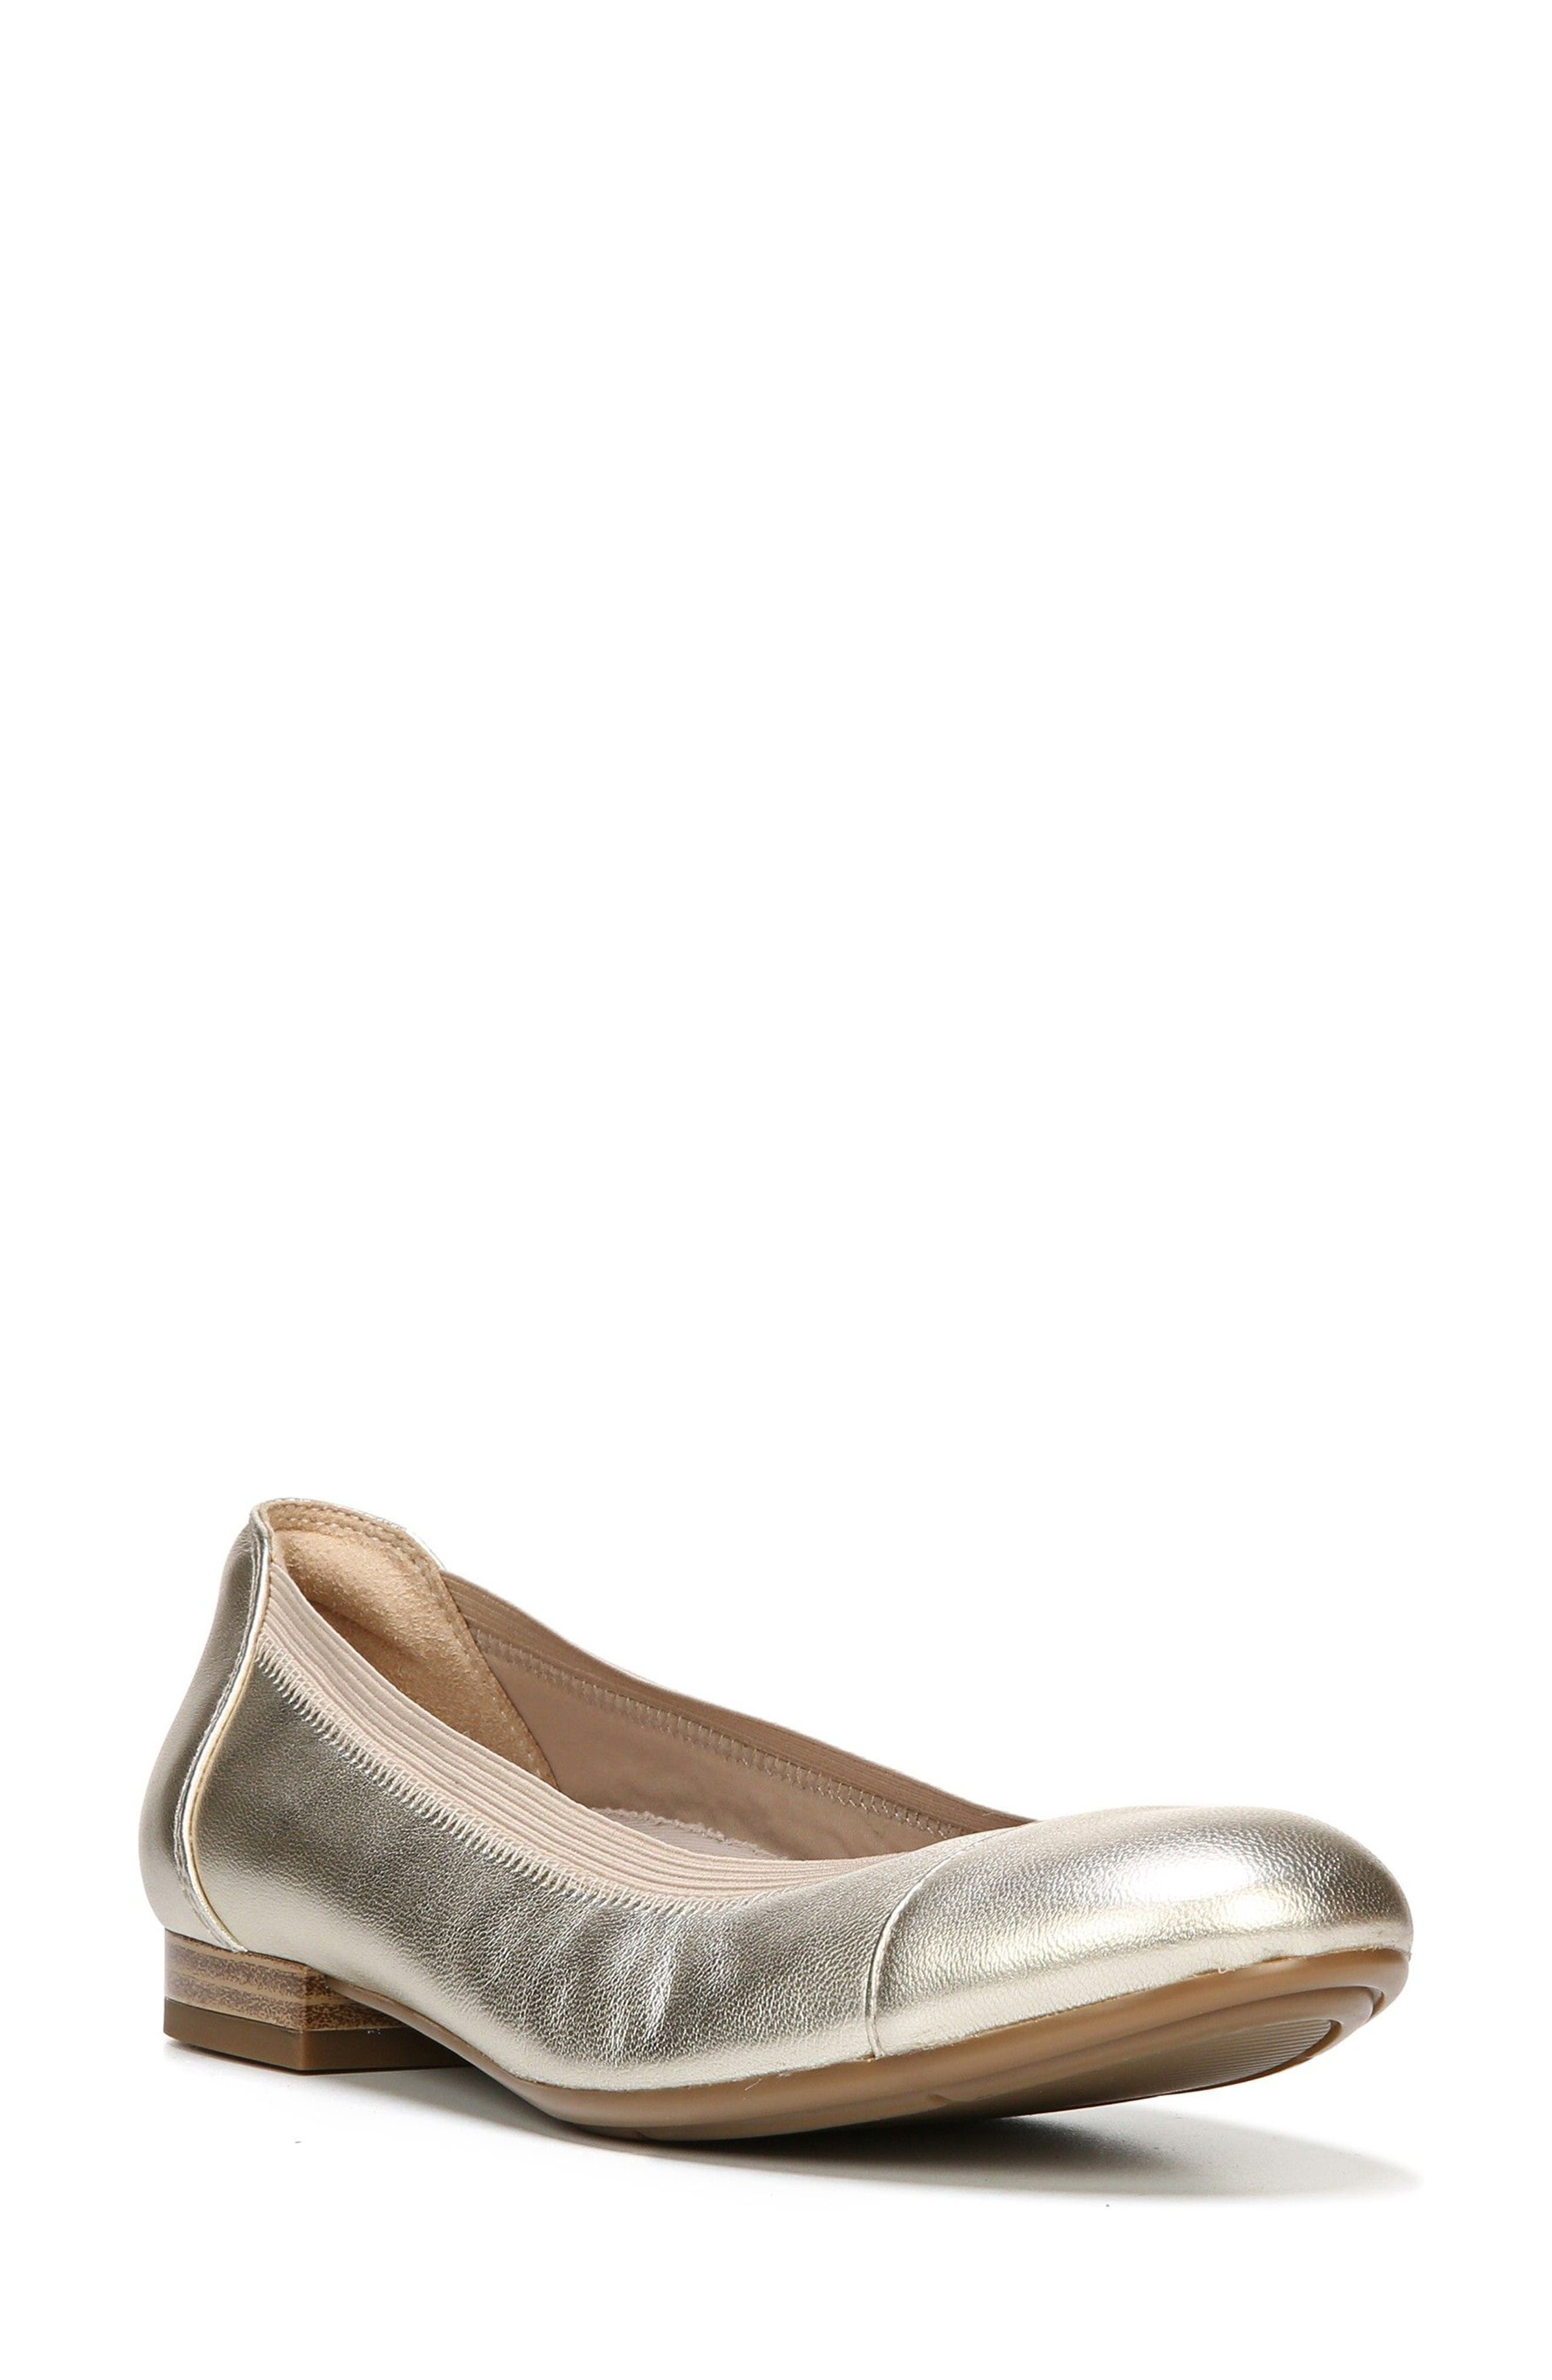 Naturalizer Therese Cap Toe Flat (Women)